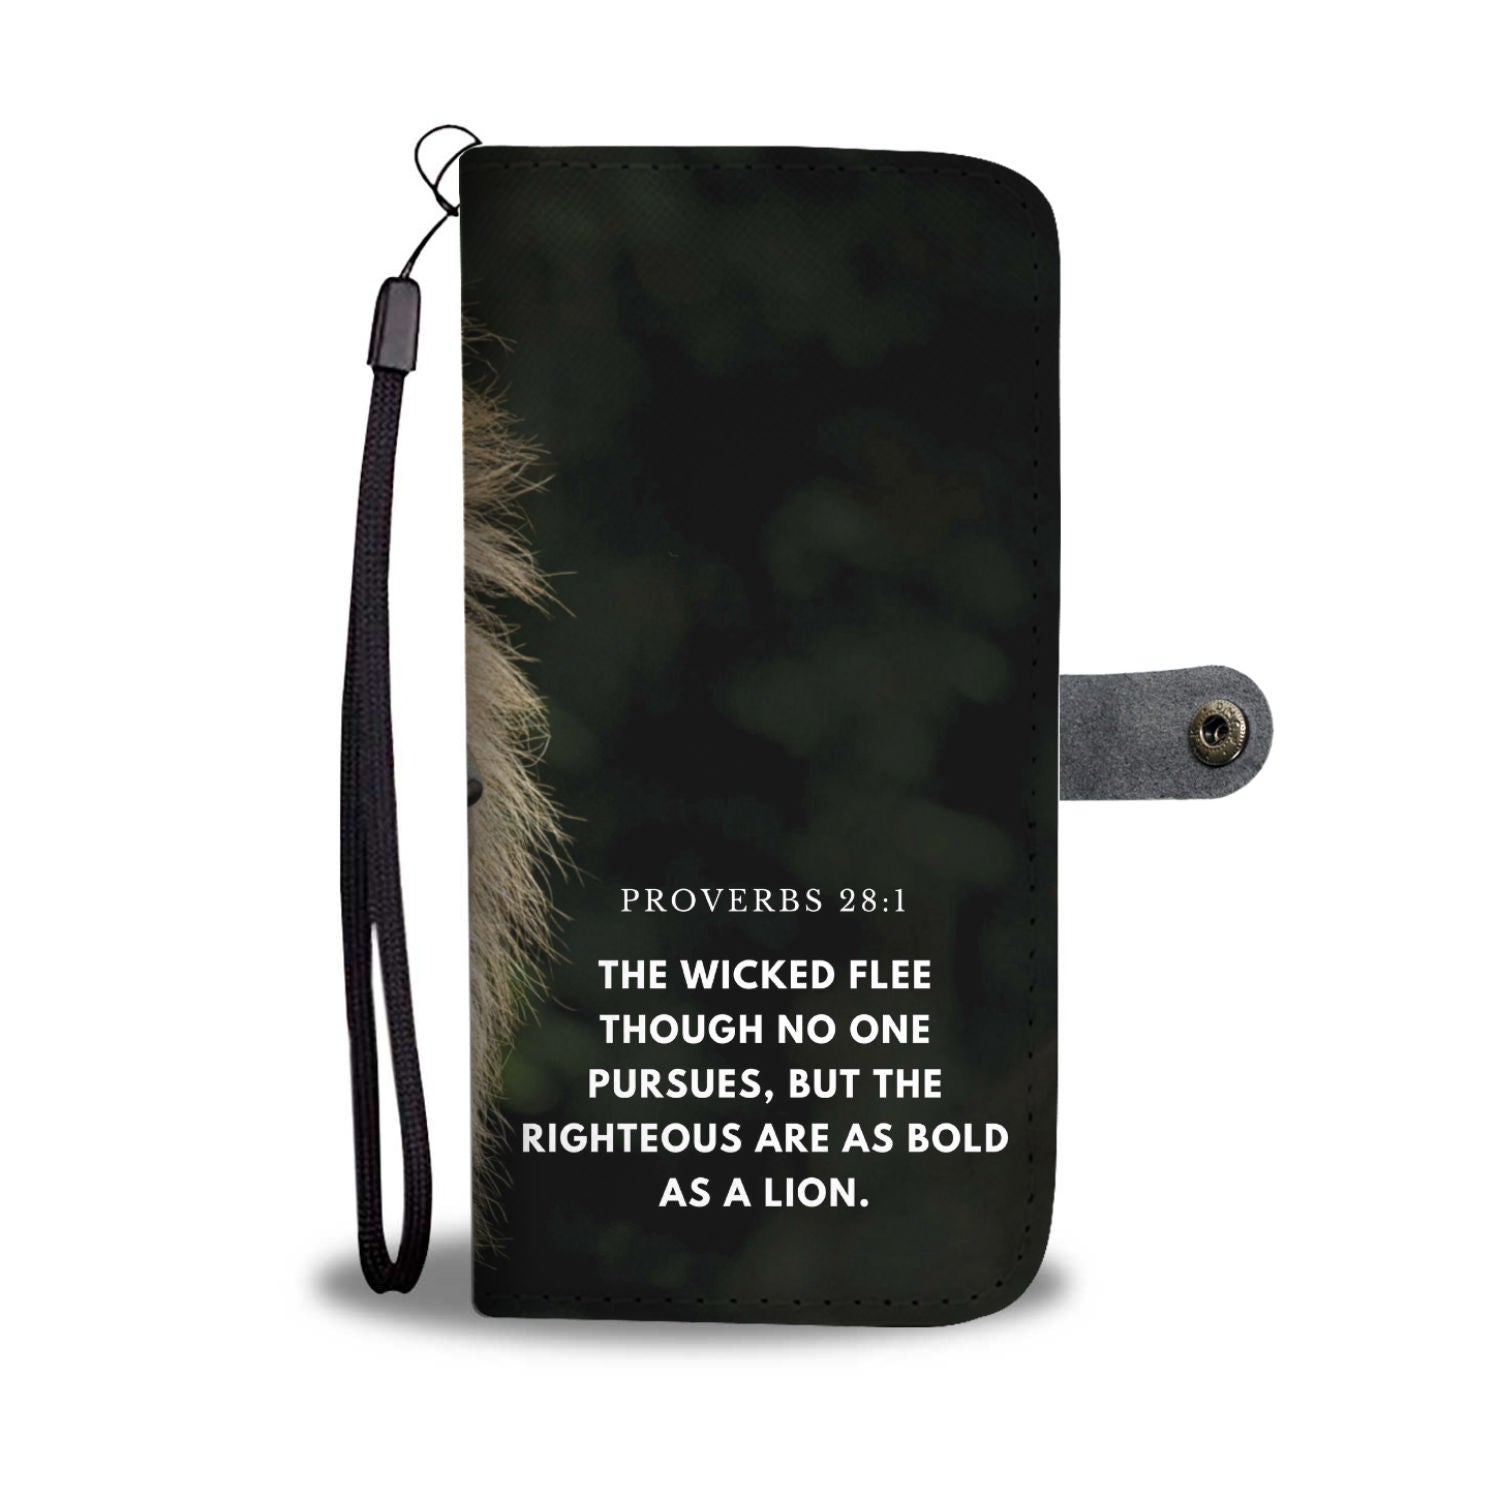 Proverbs 28:1 The Righteous Are As Bold As A Lion RFID Wallet Phone Case